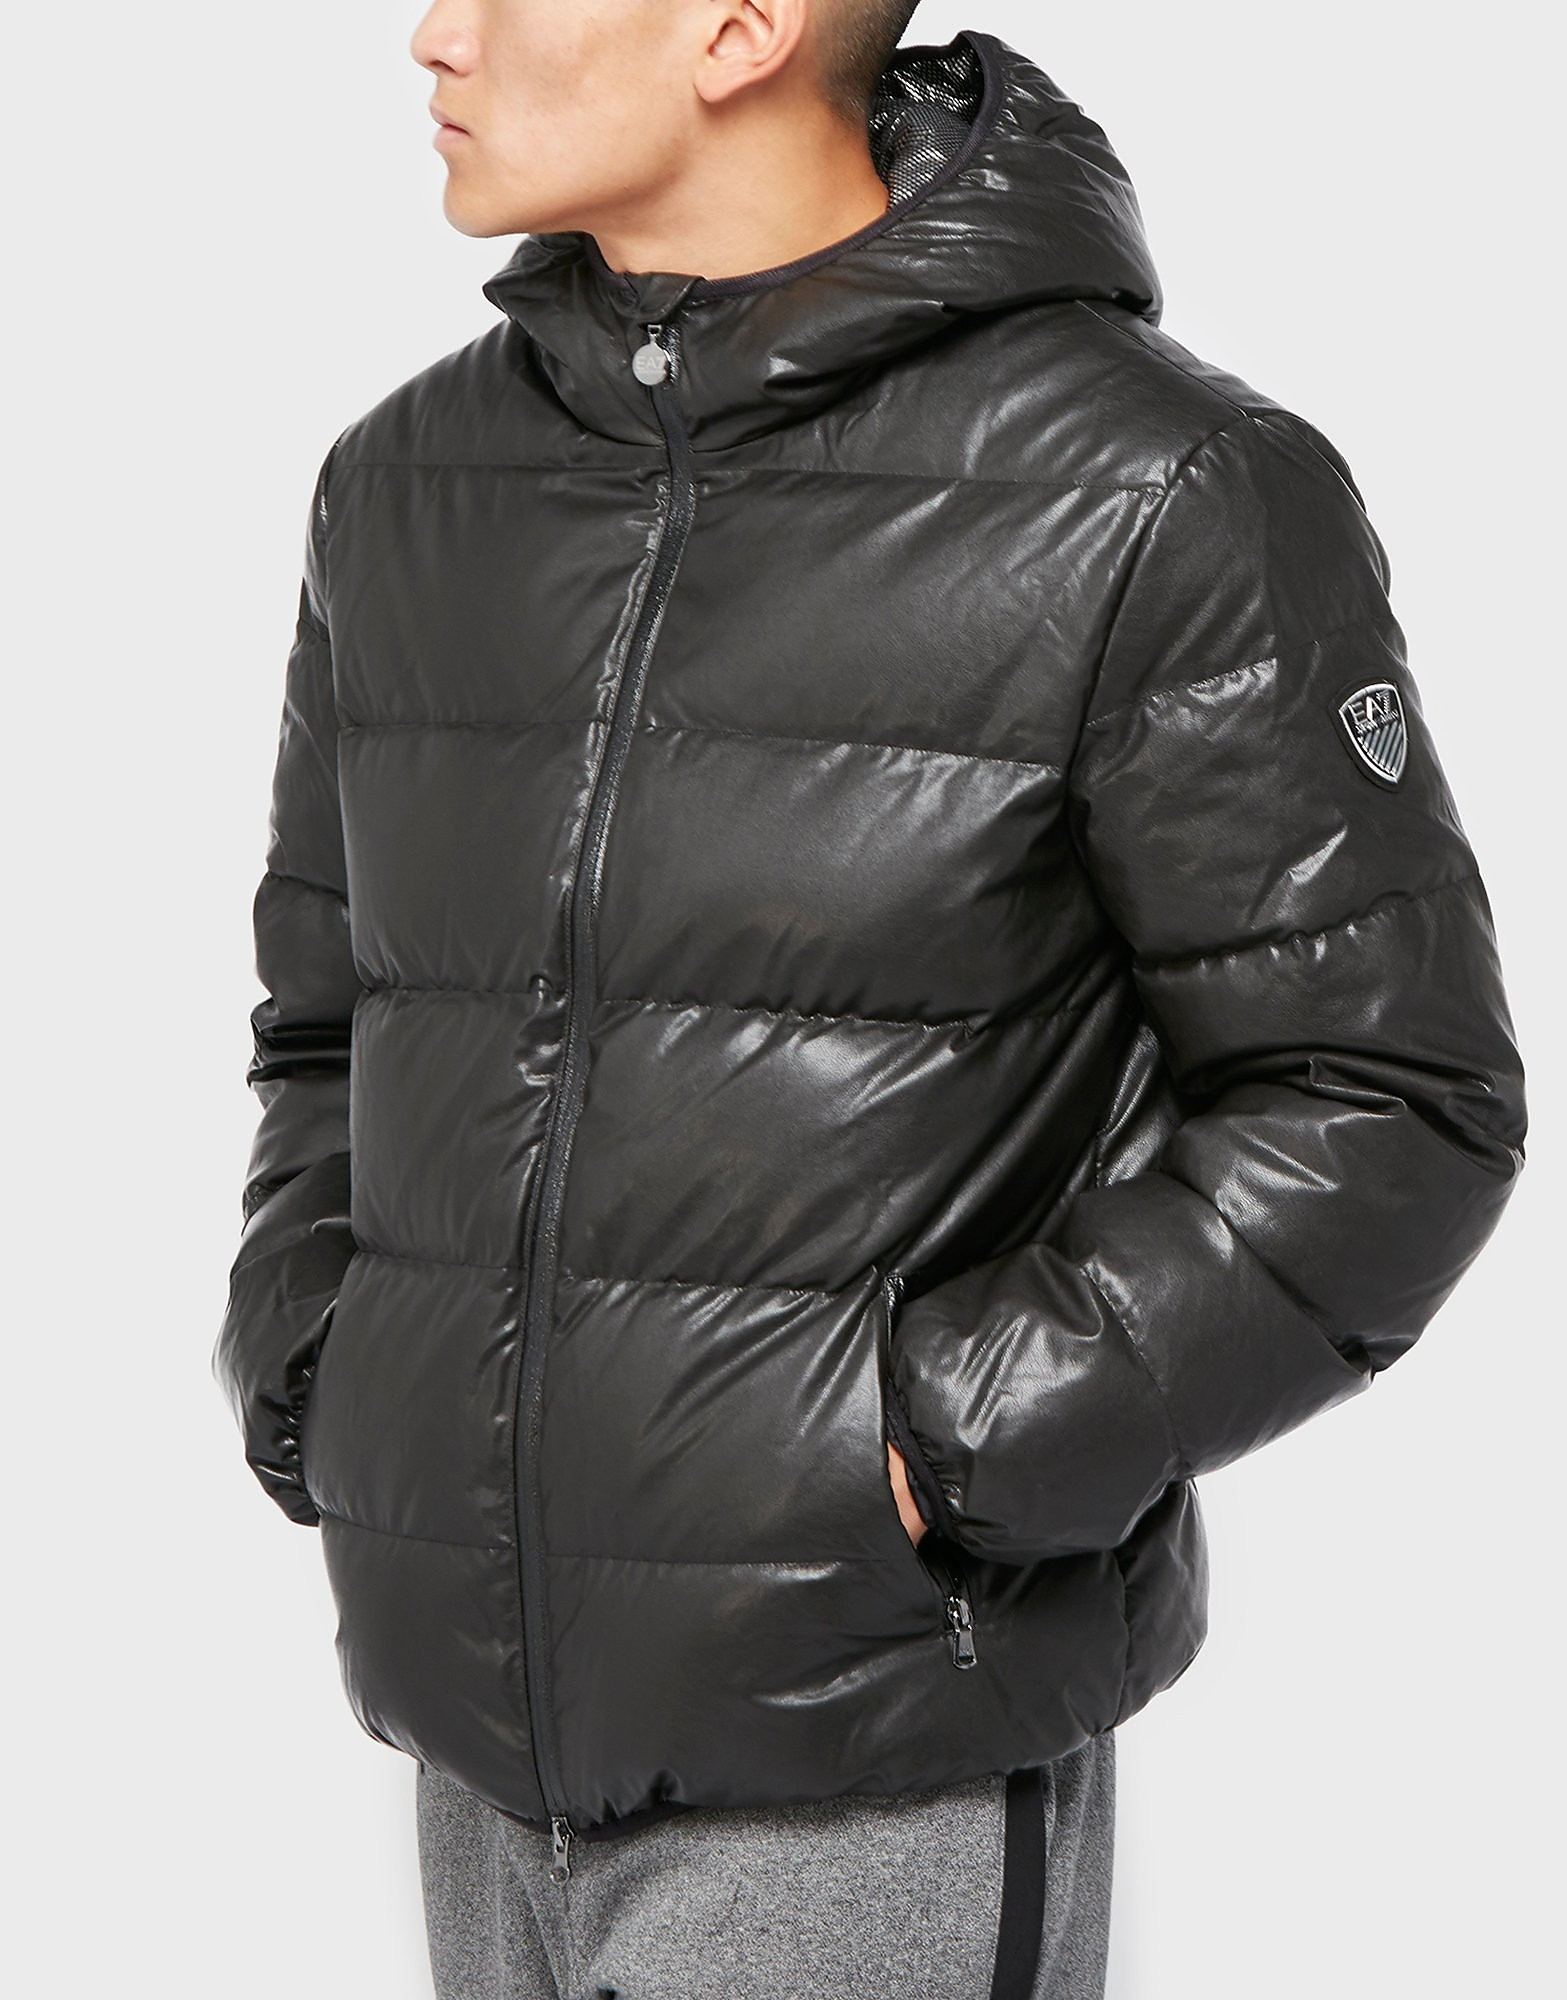 Emporio Armani EA7 Mountain Urban Padded Jacket